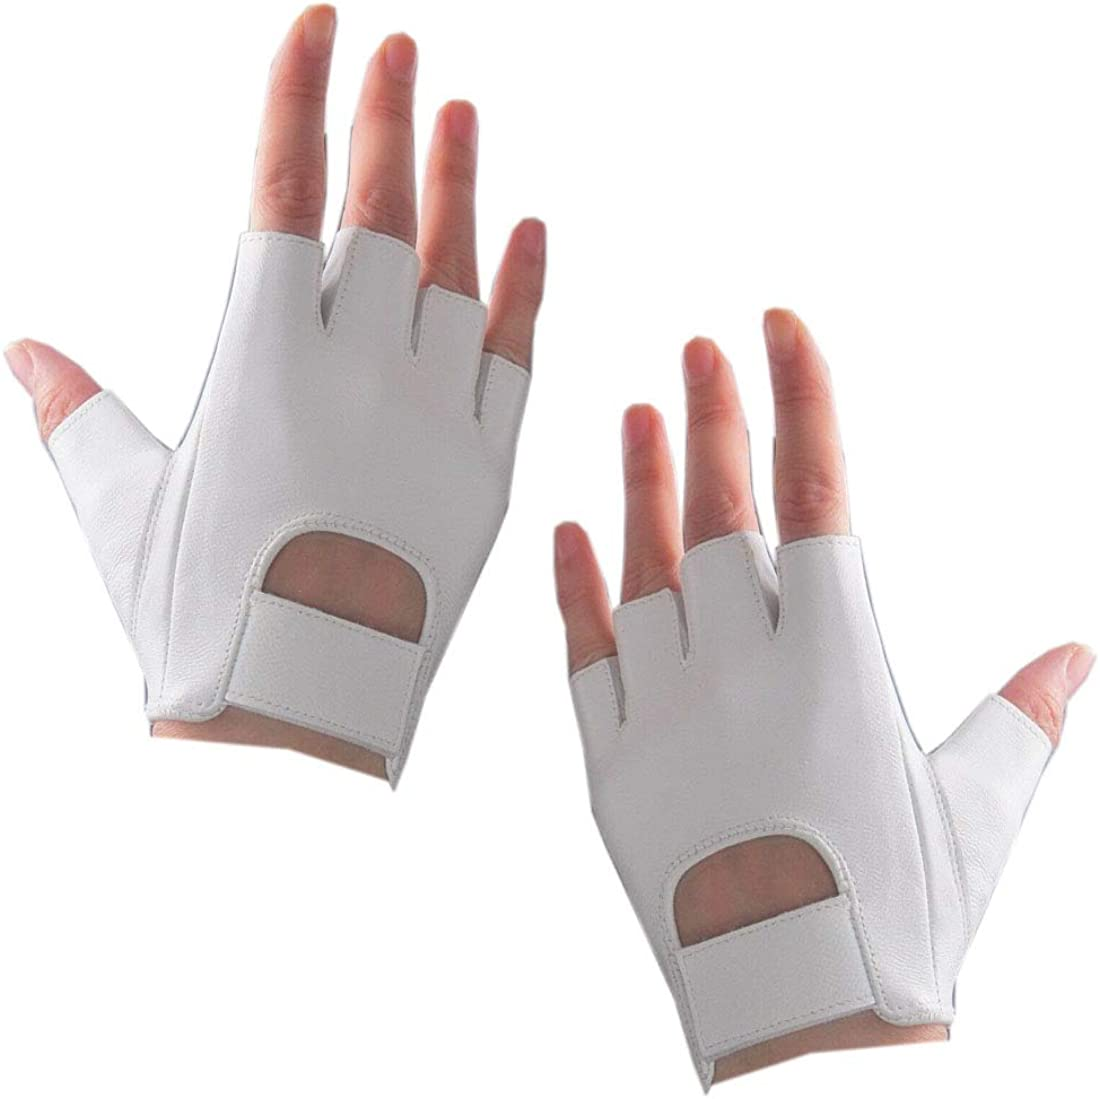 Fingerless Tactical Gloves for Men Women Genuine Leather Army Hunting Shooting Motorcycle Driving Cycling Biker White